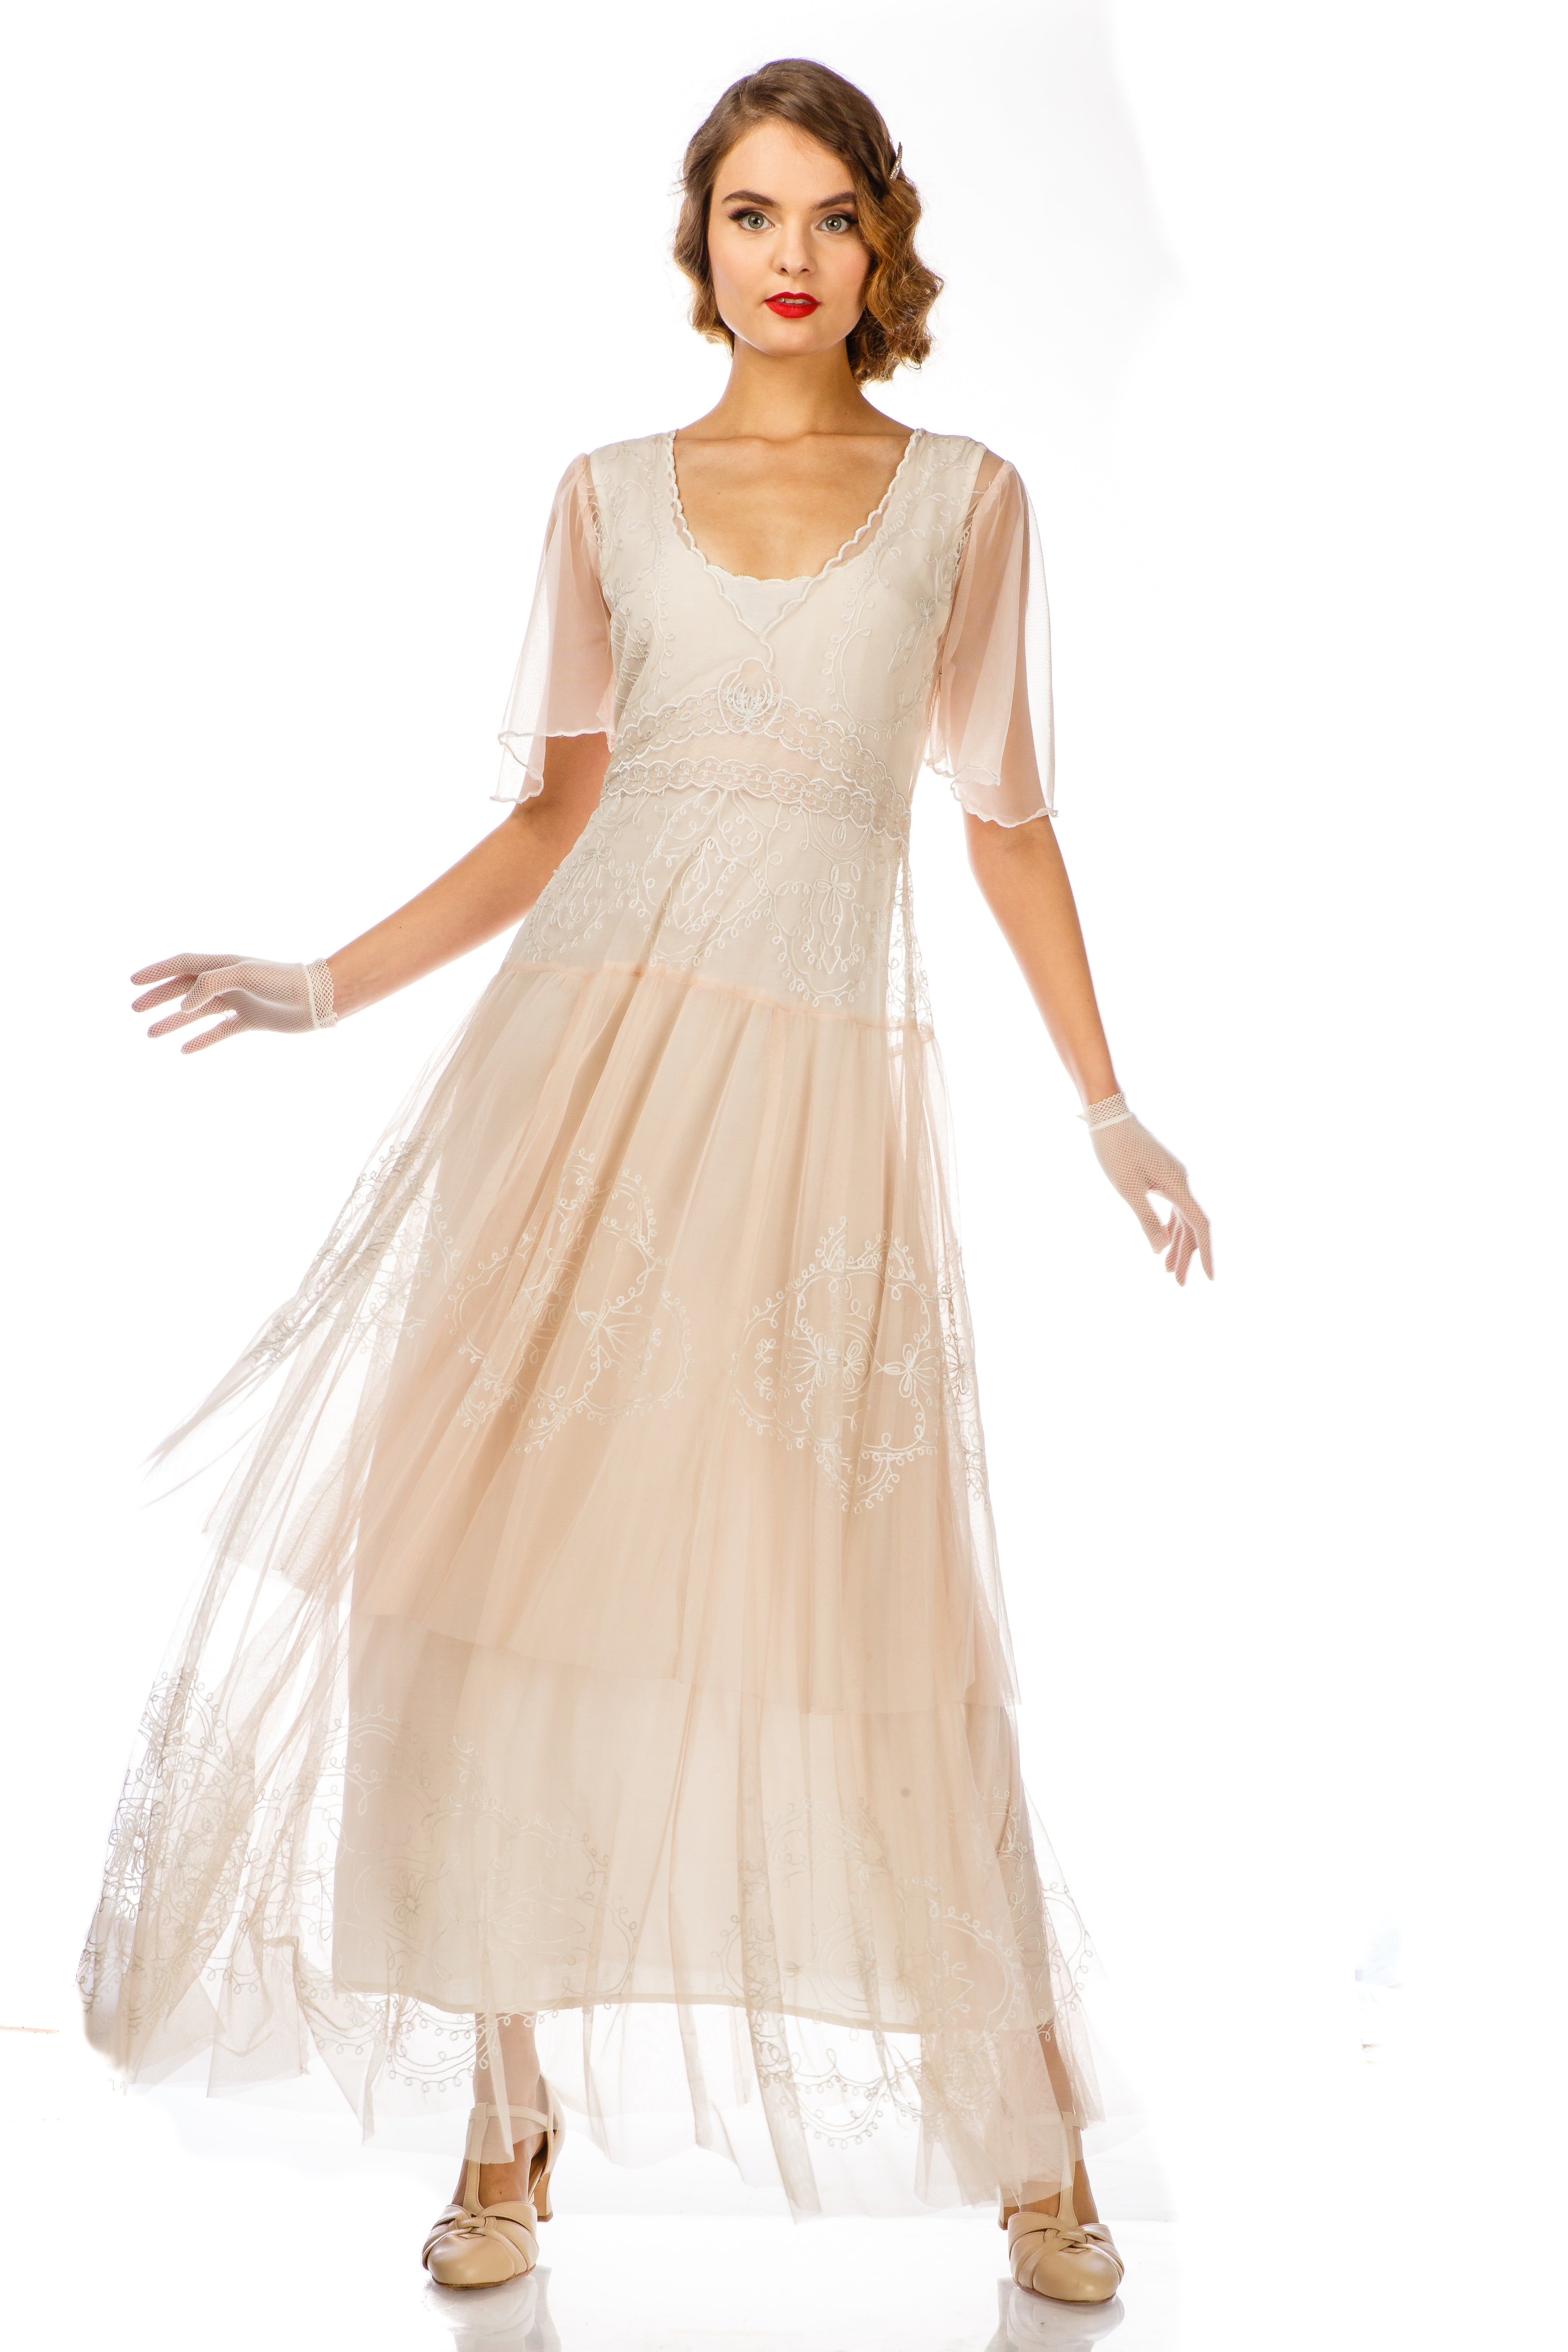 1920s Outfit Ideas: 10 Downton Abbey Inspired Costumes Scarlett 1920s Style Wedding Dress in Peach Ivory by Nataya $280.00 AT vintagedancer.com